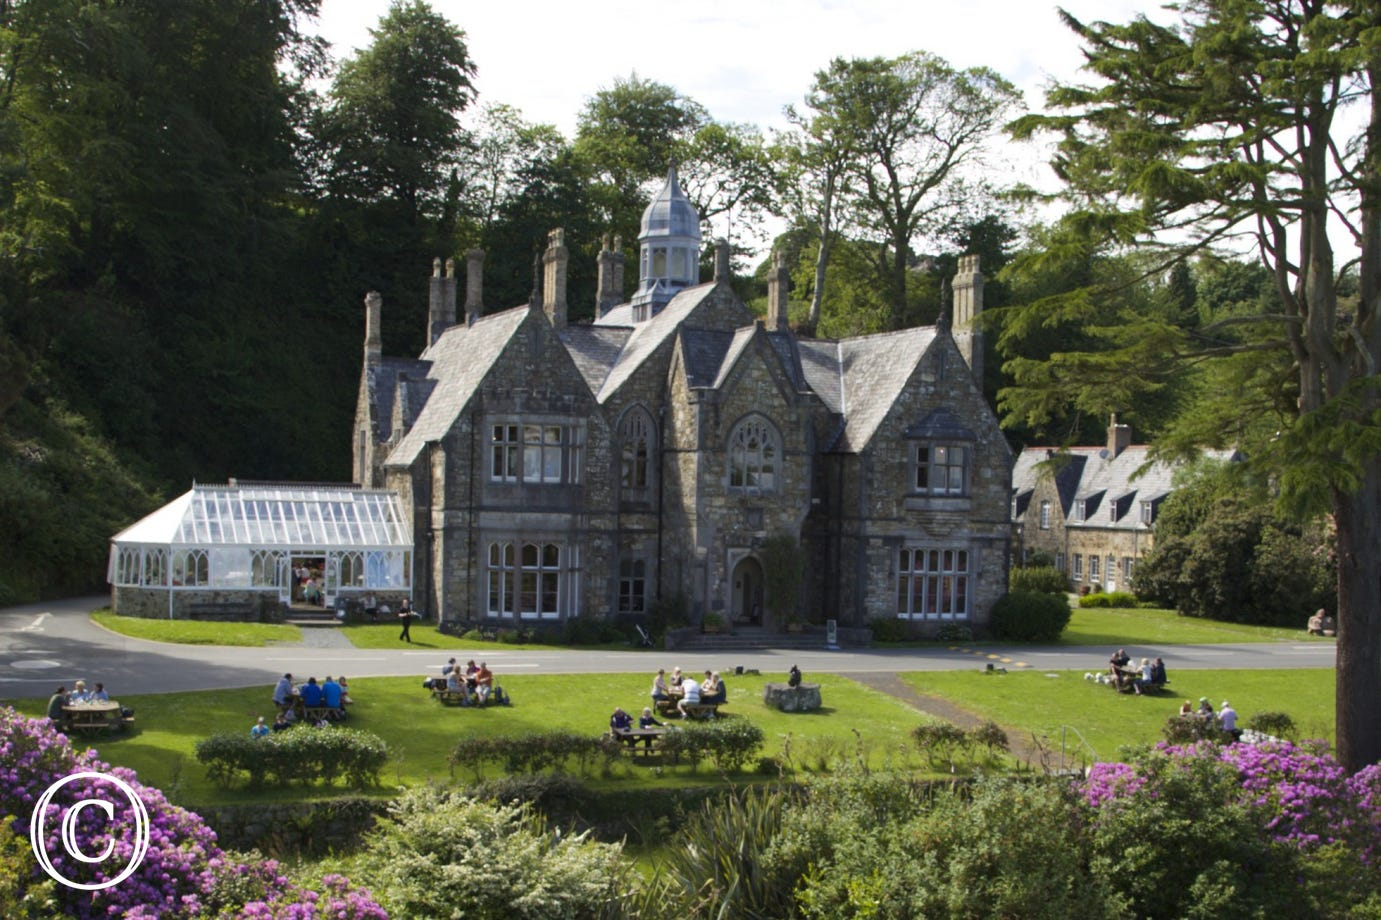 Oriel Plas Glyn Y Weddw Arts Centre and Tea Room in Llanbedrog (8 miles)